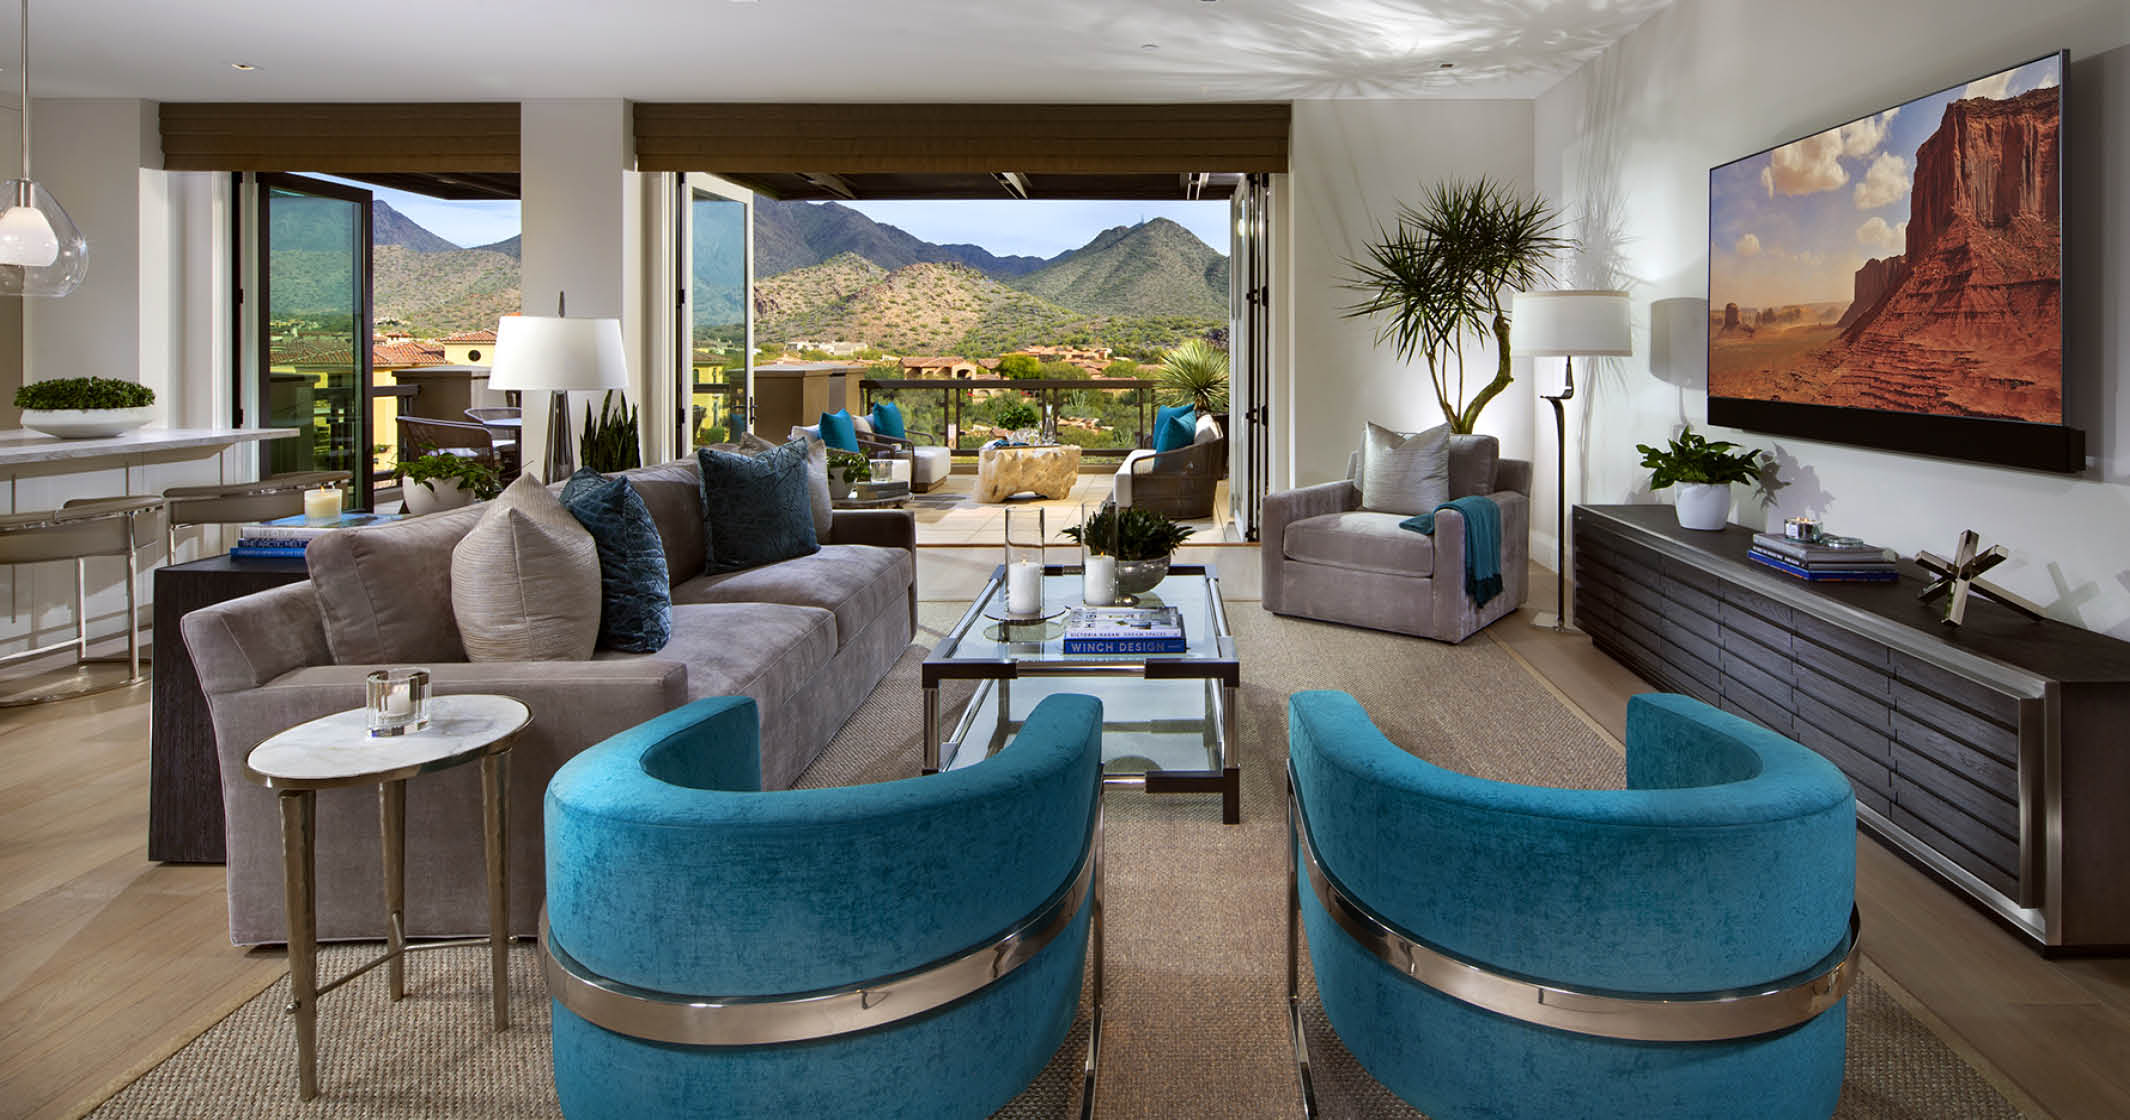 ICON Silverleaf Model Home Interior